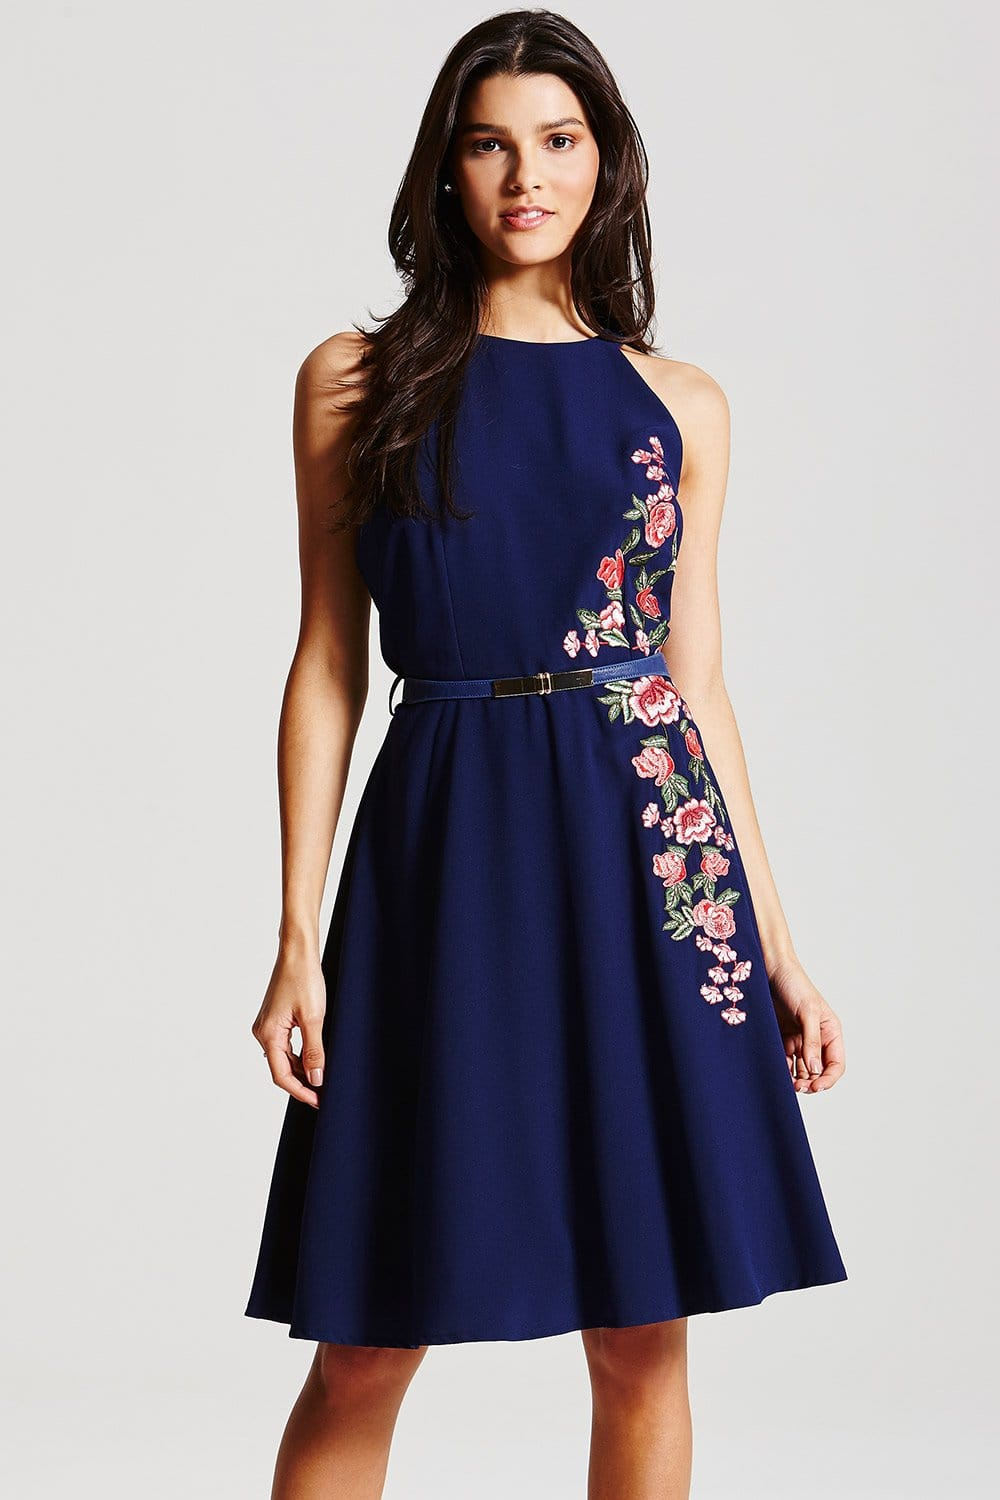 Navy Floral Embroidered Fit and Flare Dress  from Little Mistress UK